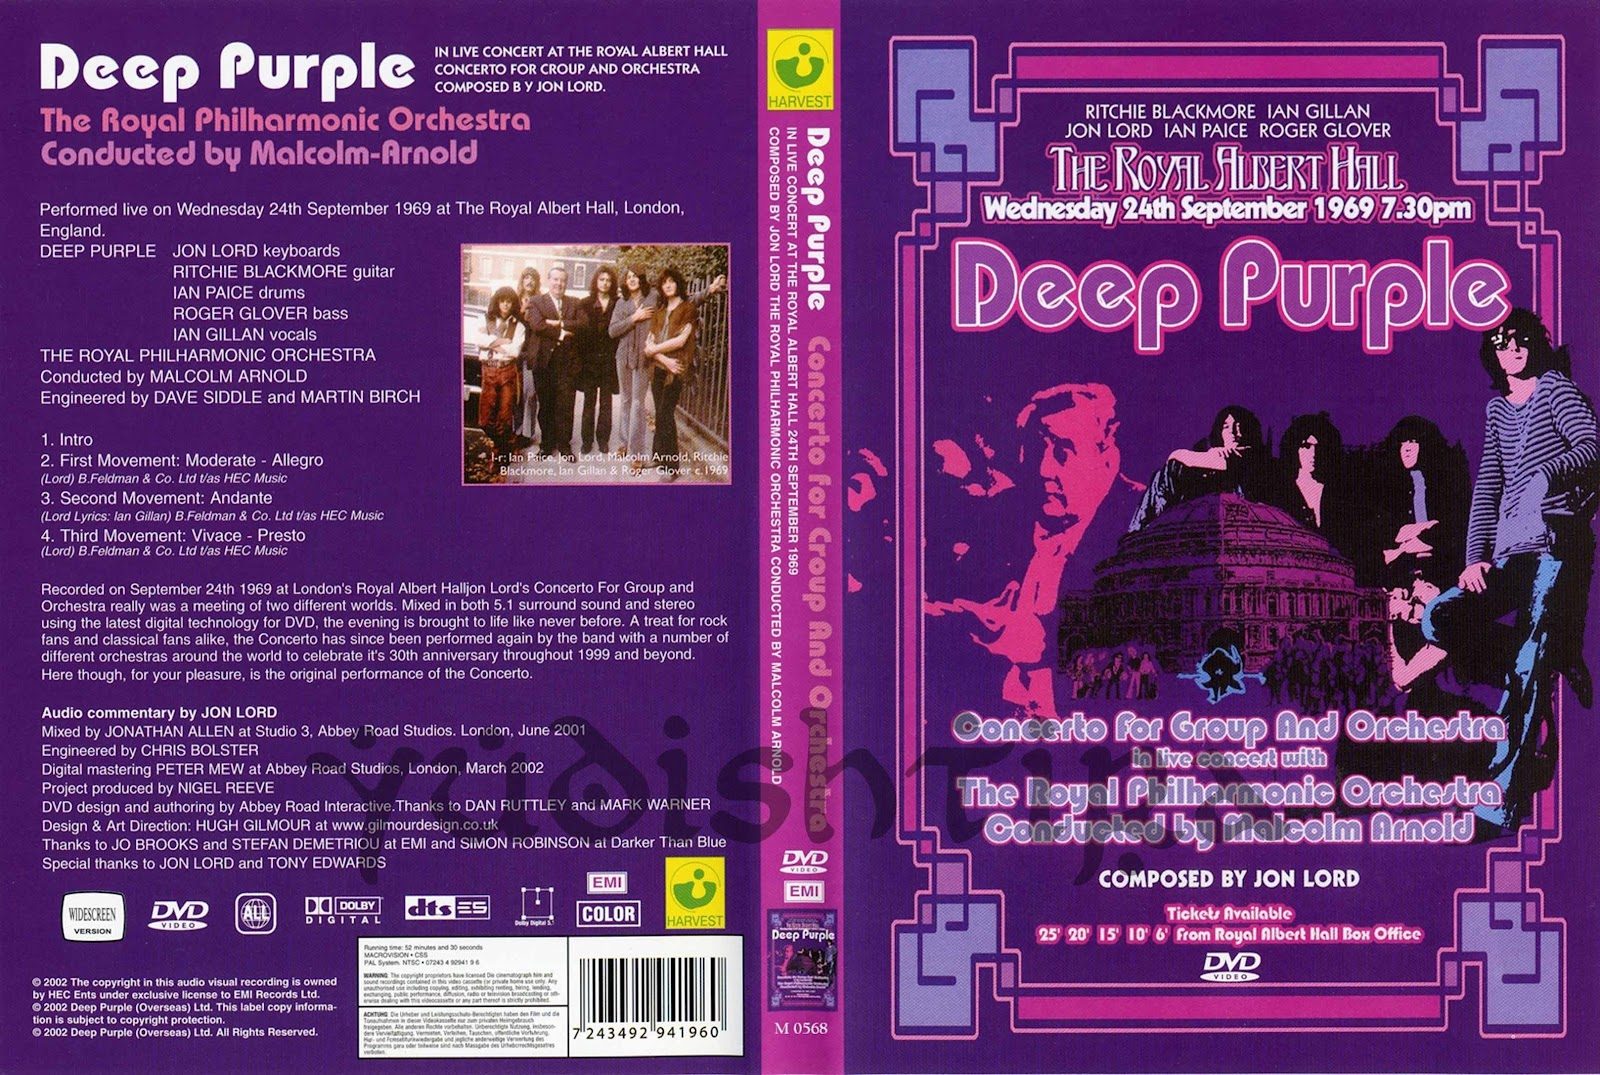 Deep Purple Royal Philharmonic OrchestraConducted By Malcolm Arnold Concerto For Group And Orchestra